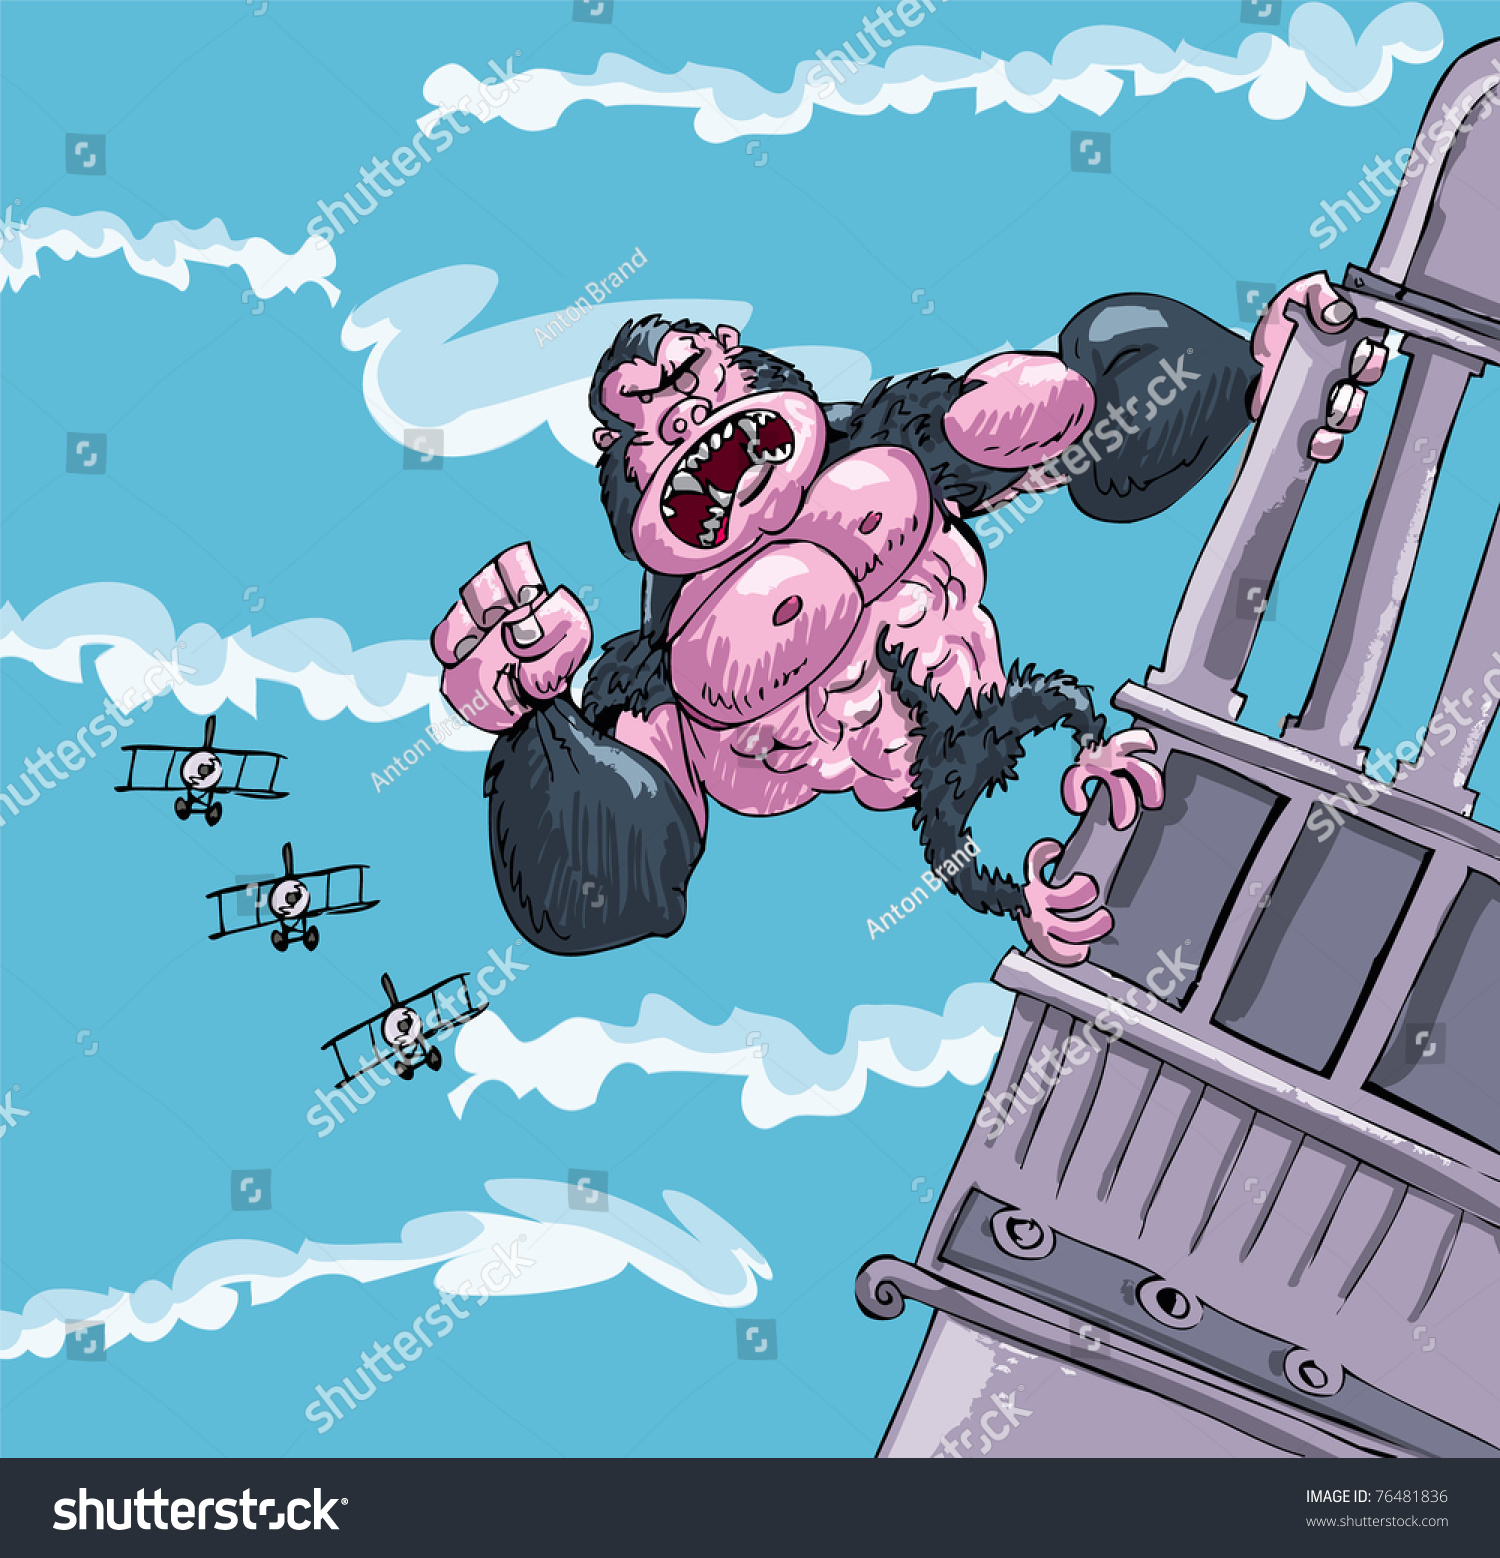 Image Gallery king kong cartoon